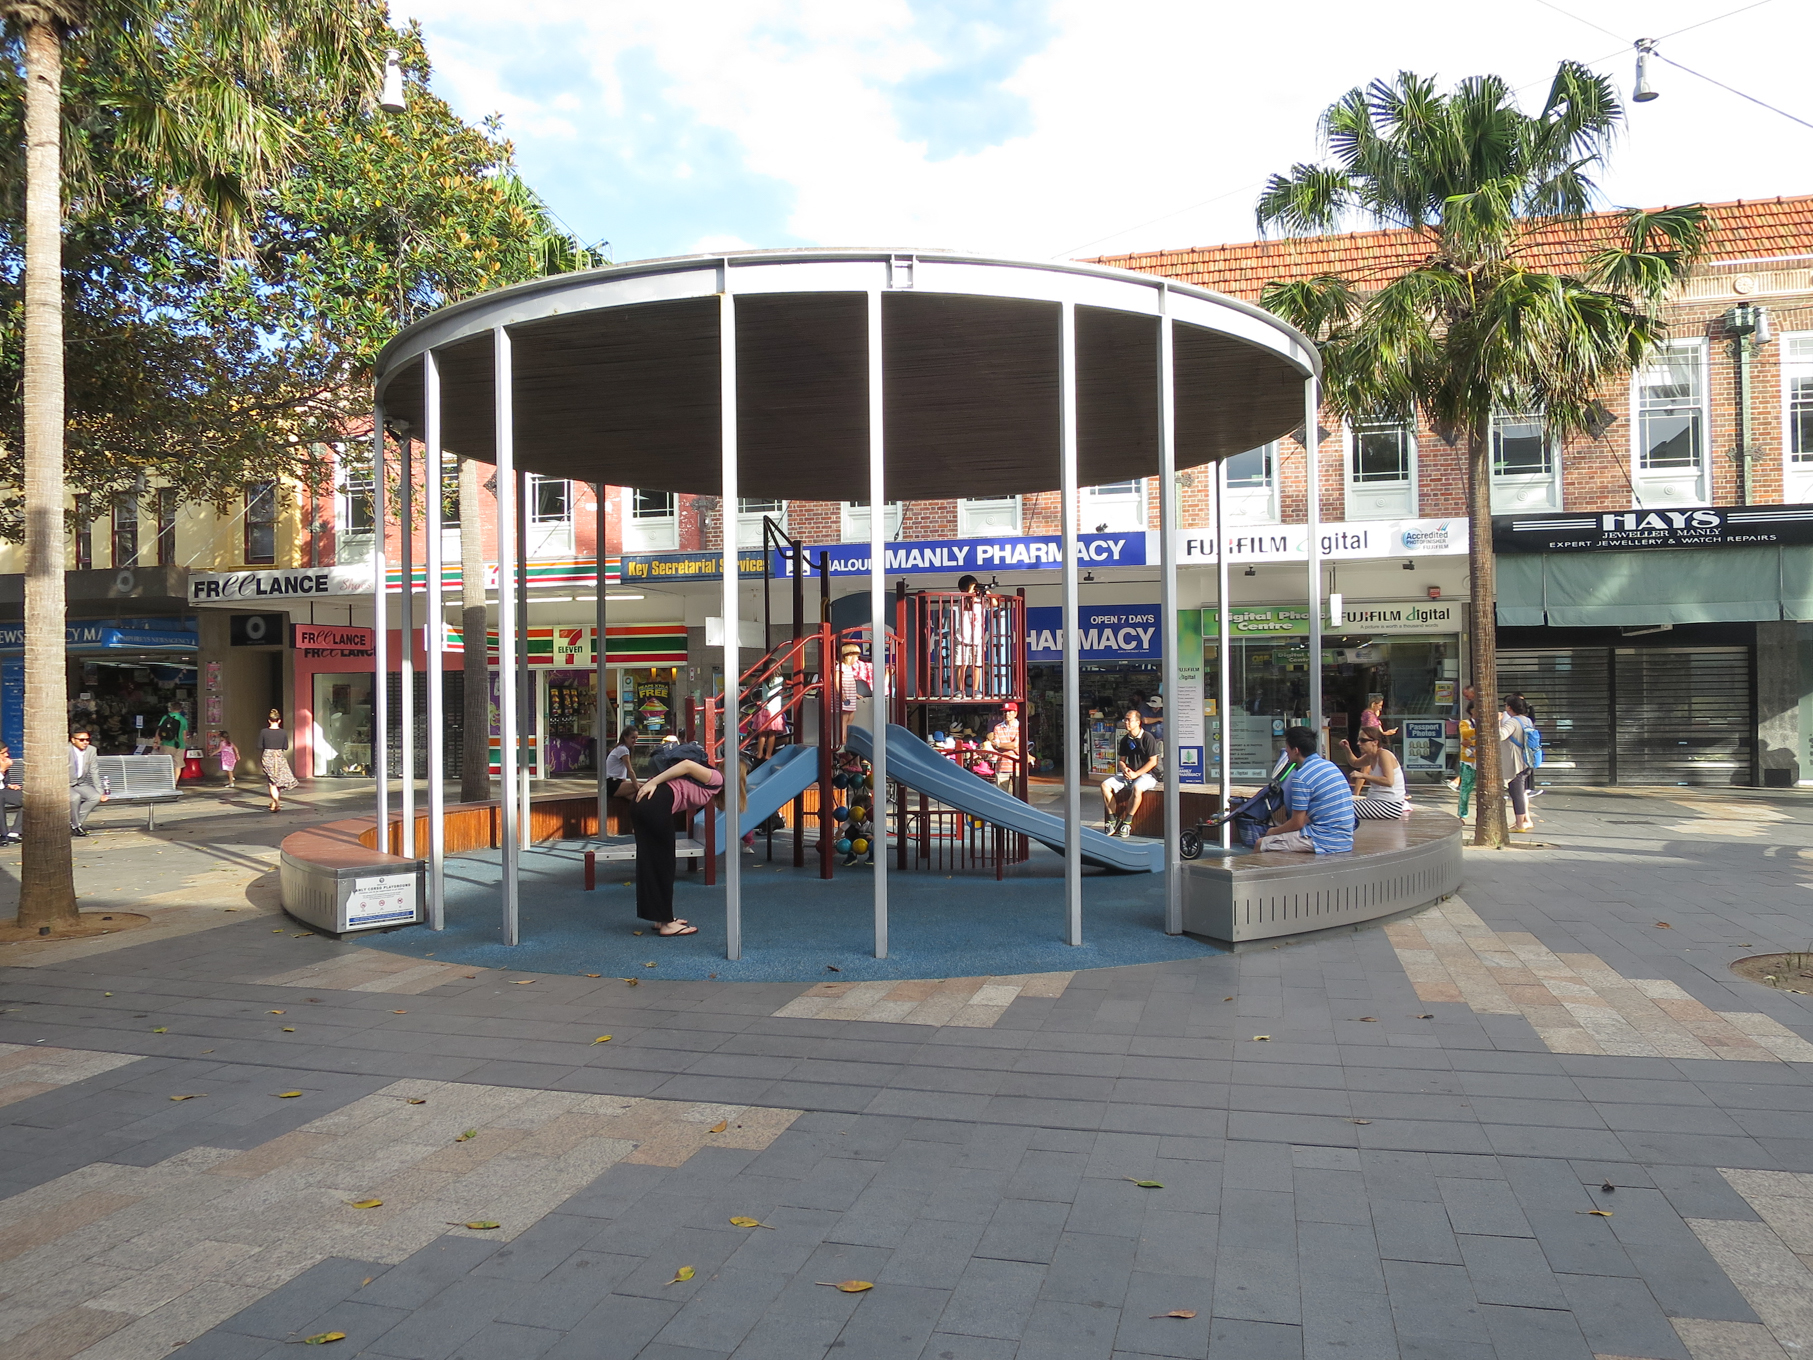 Fig 11: Playground in Manly shopping mall